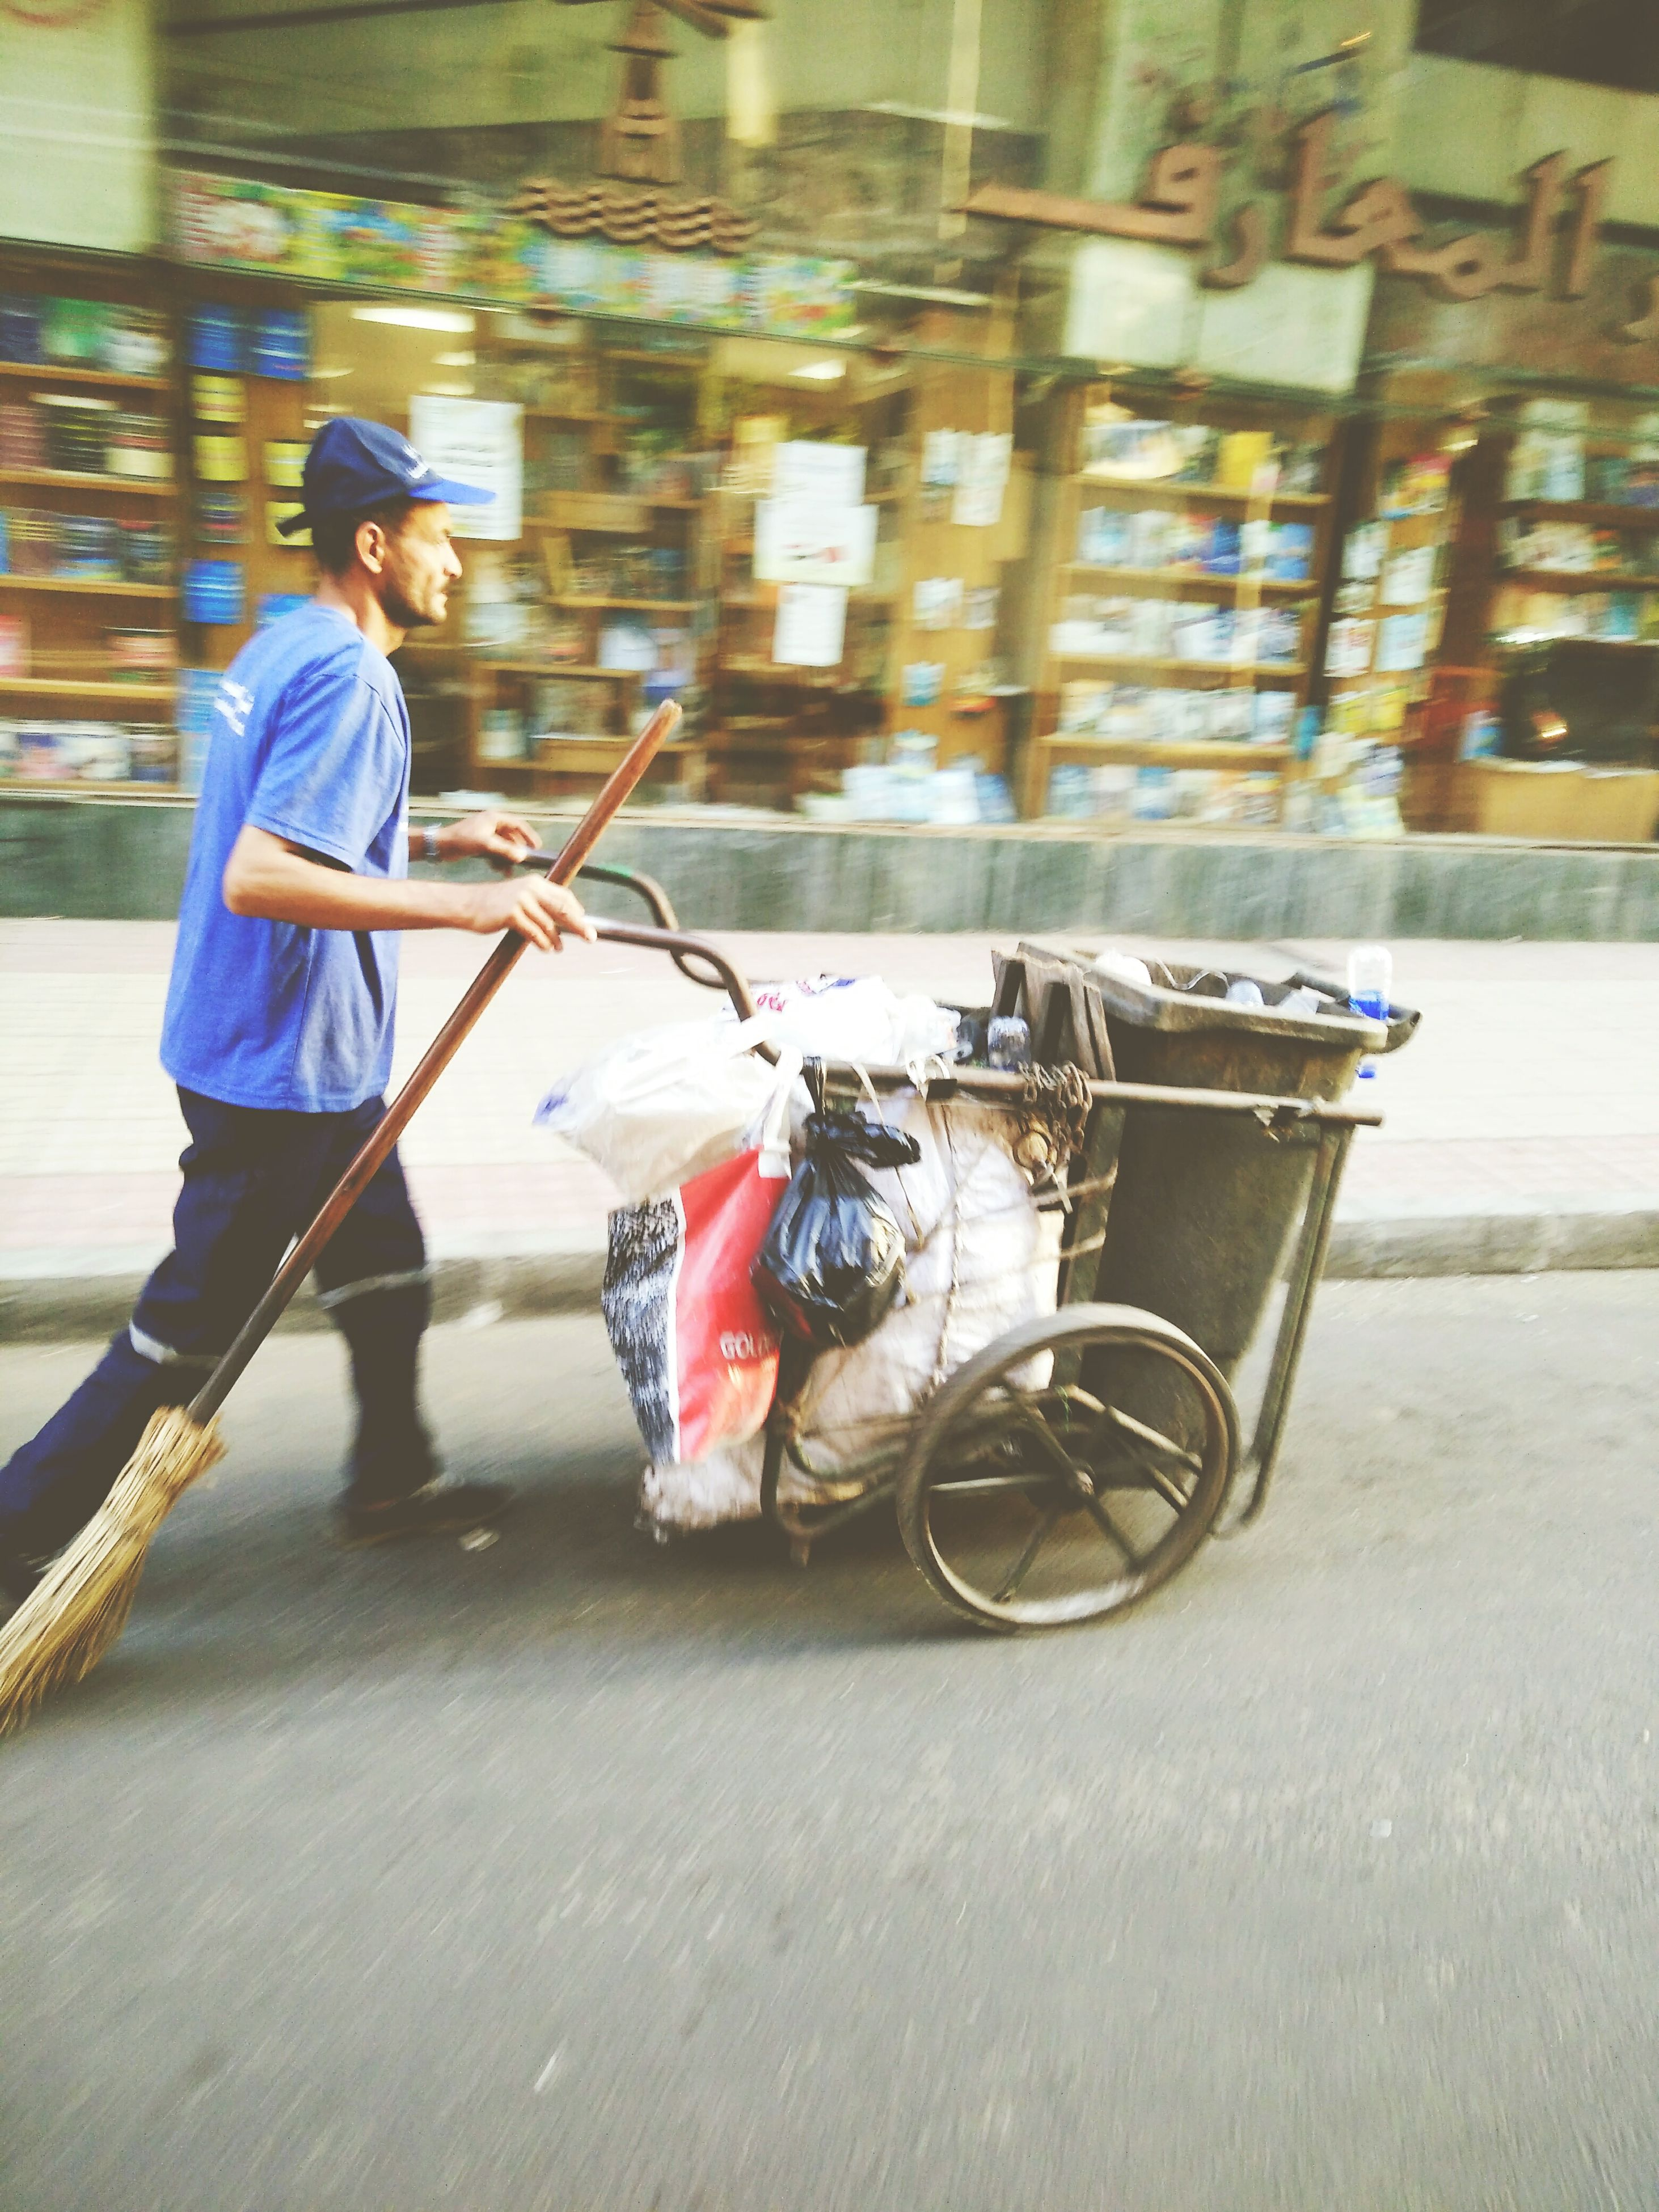 mode of transport, transportation, bicycle, land vehicle, casual clothing, full length, travel, city, road, lifestyles, street, city life, holding, person, young adult, outdoors, day